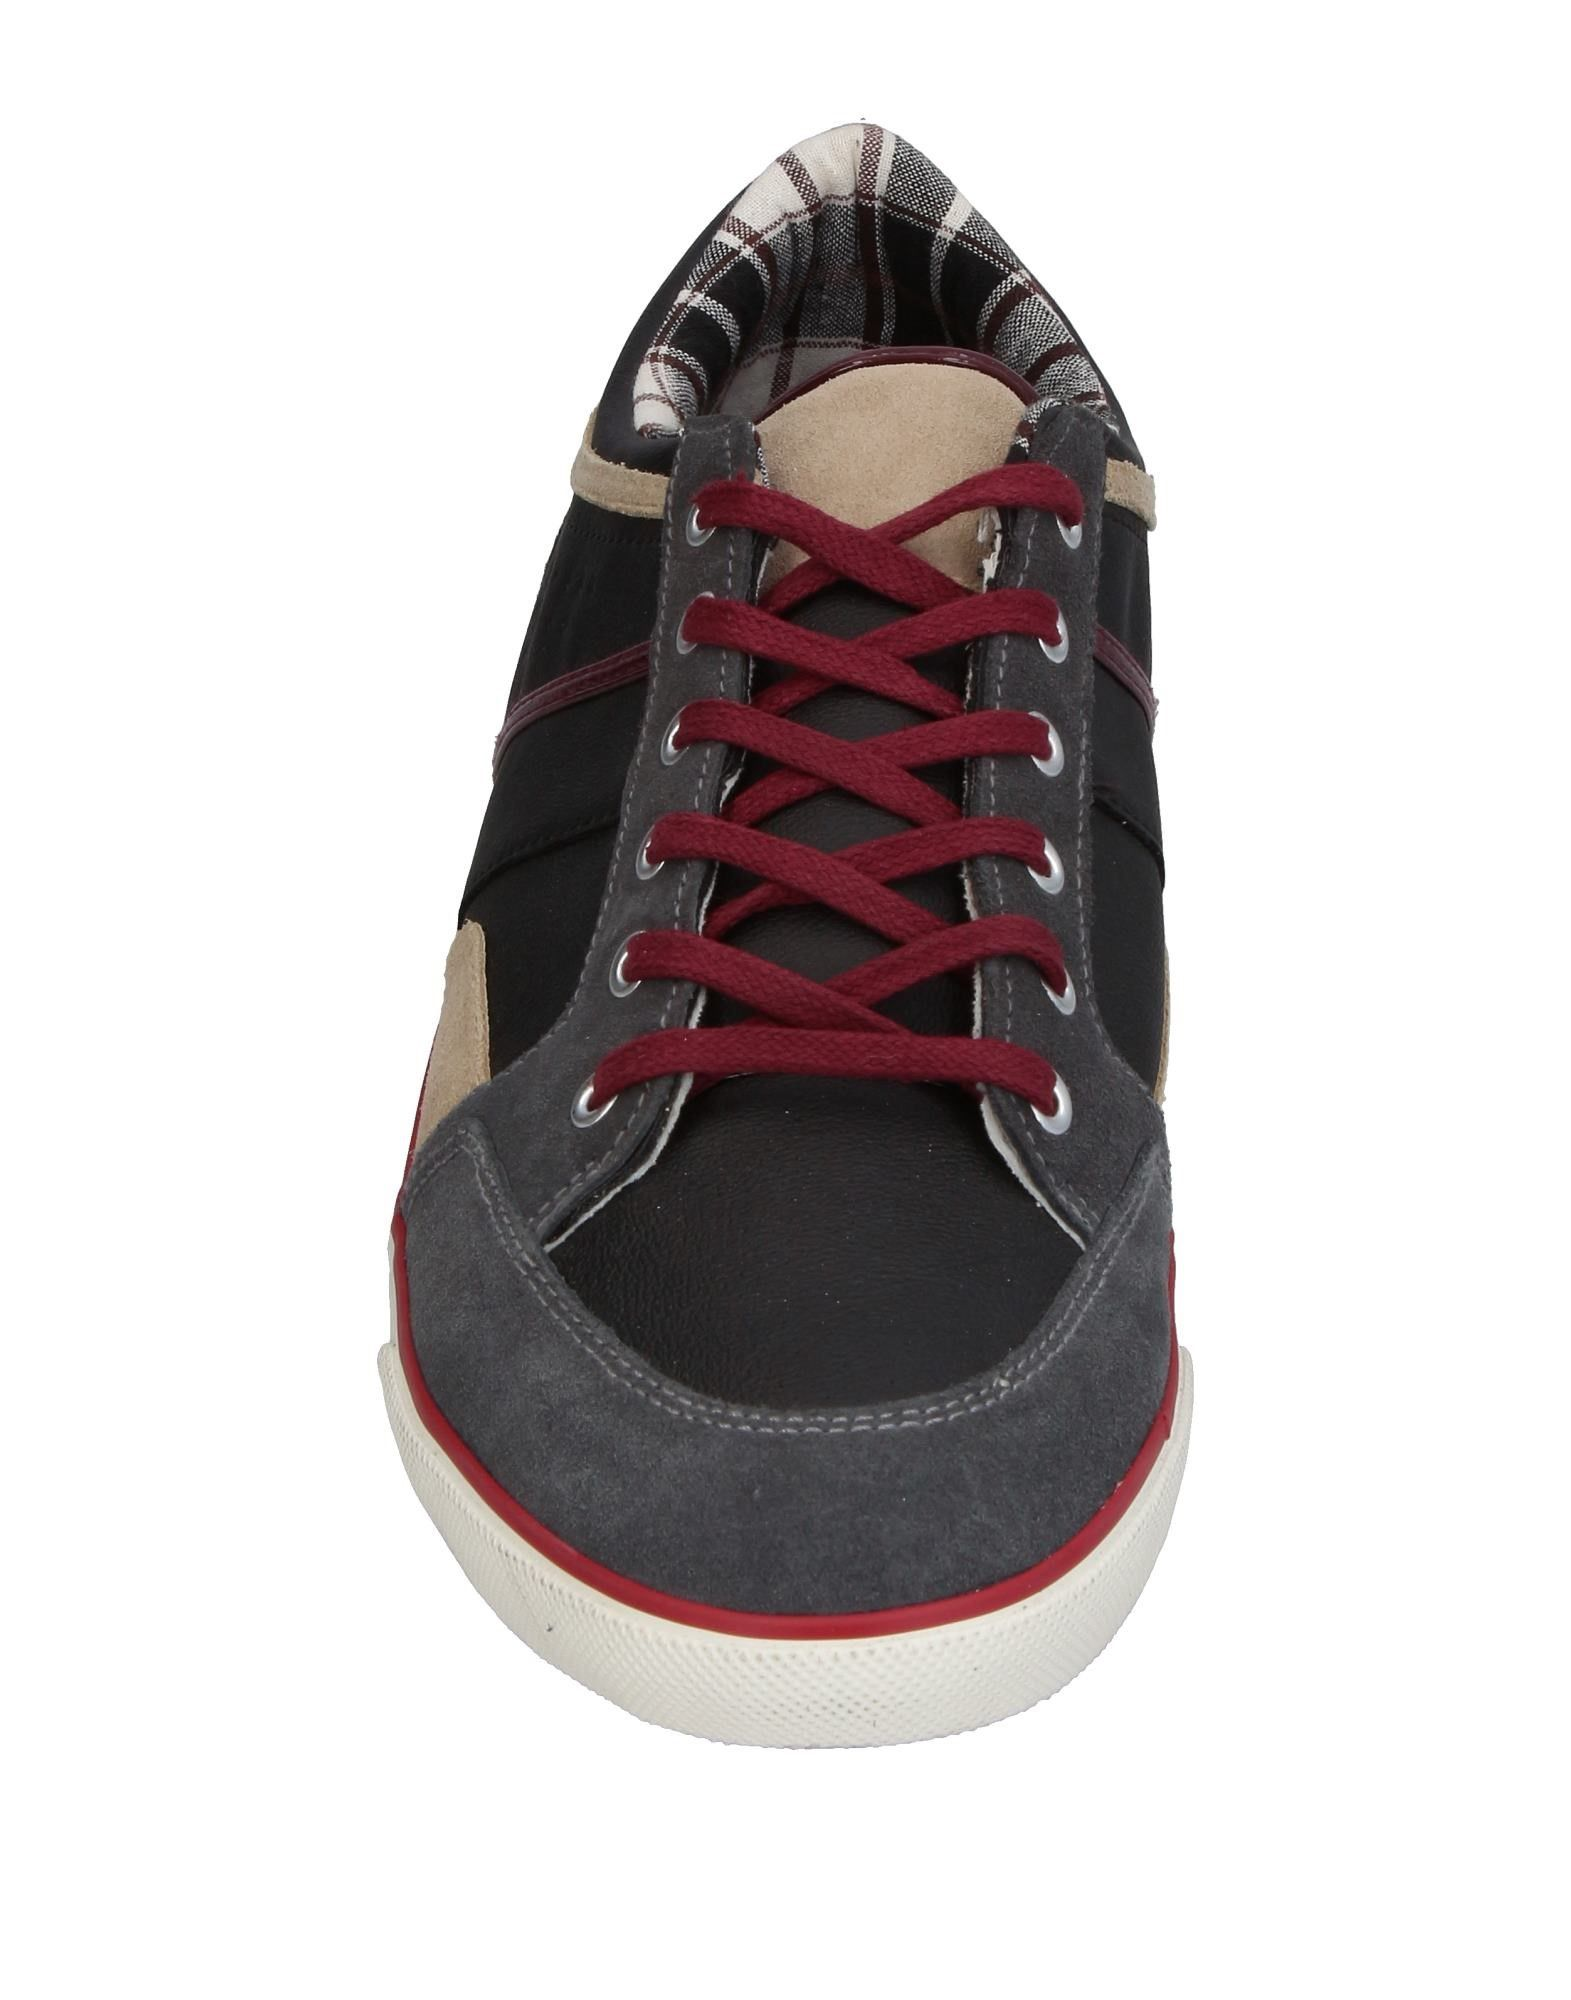 Sneakers Selected Homme - Sneakers Selected sur